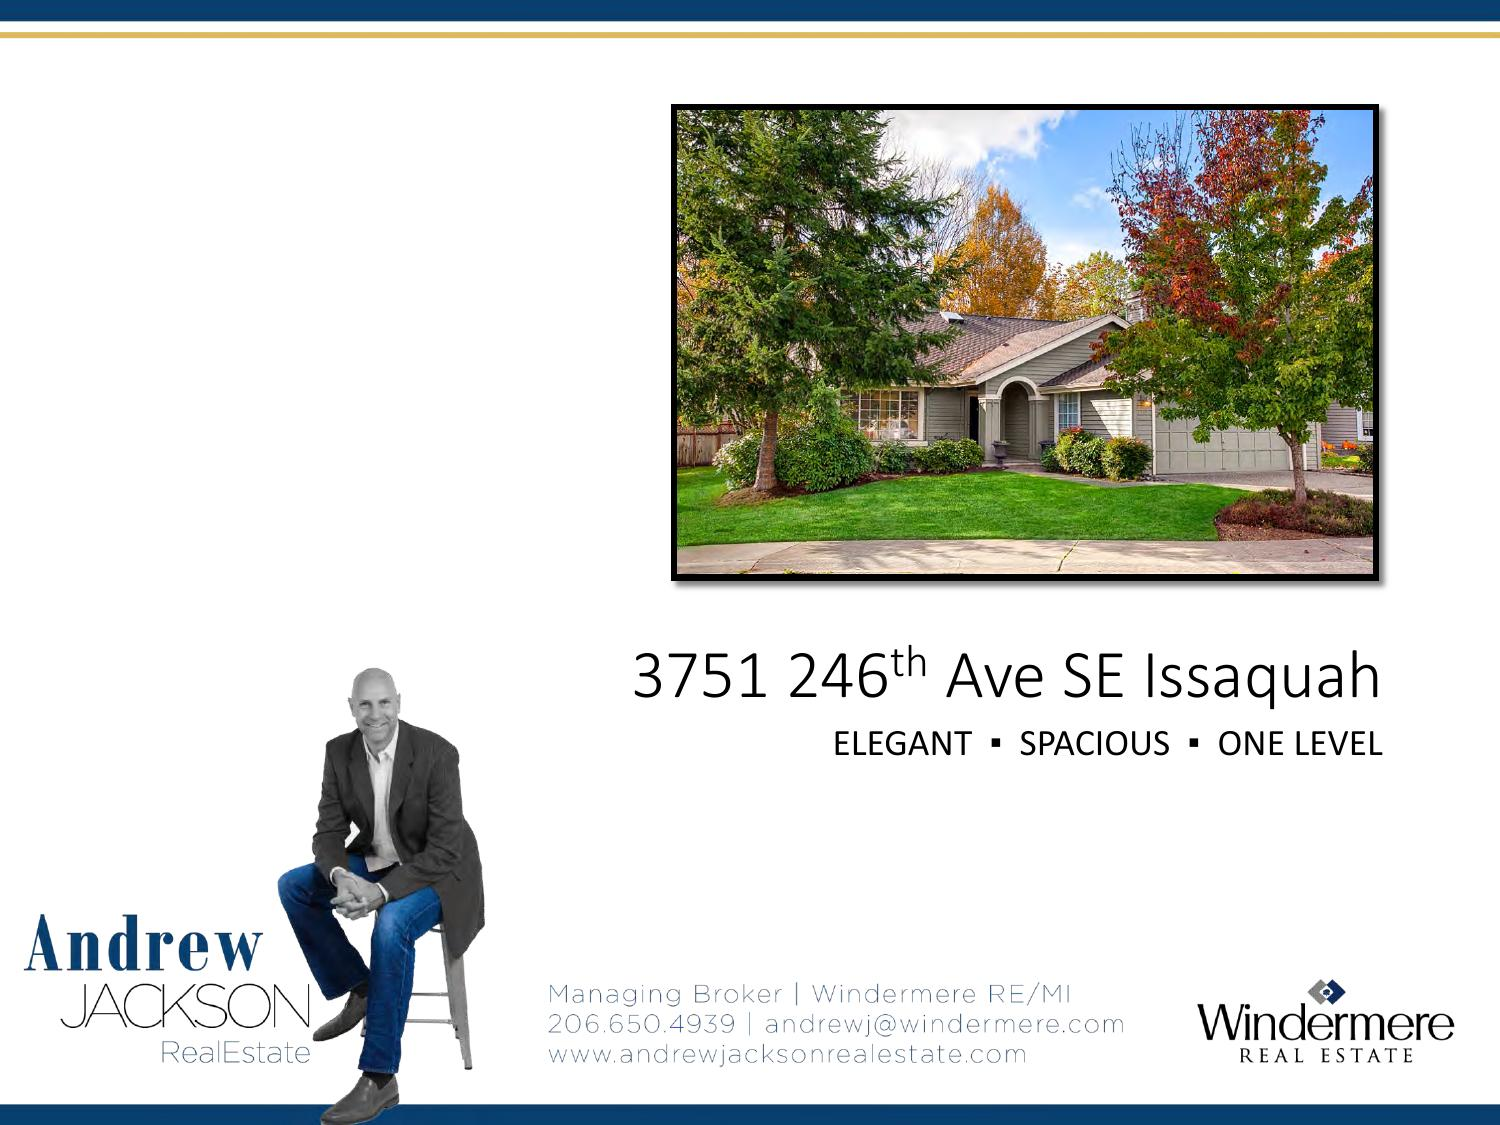 Andrew 3751 246th Ave Se Issaquah By Windermere Mercer Island Page 1